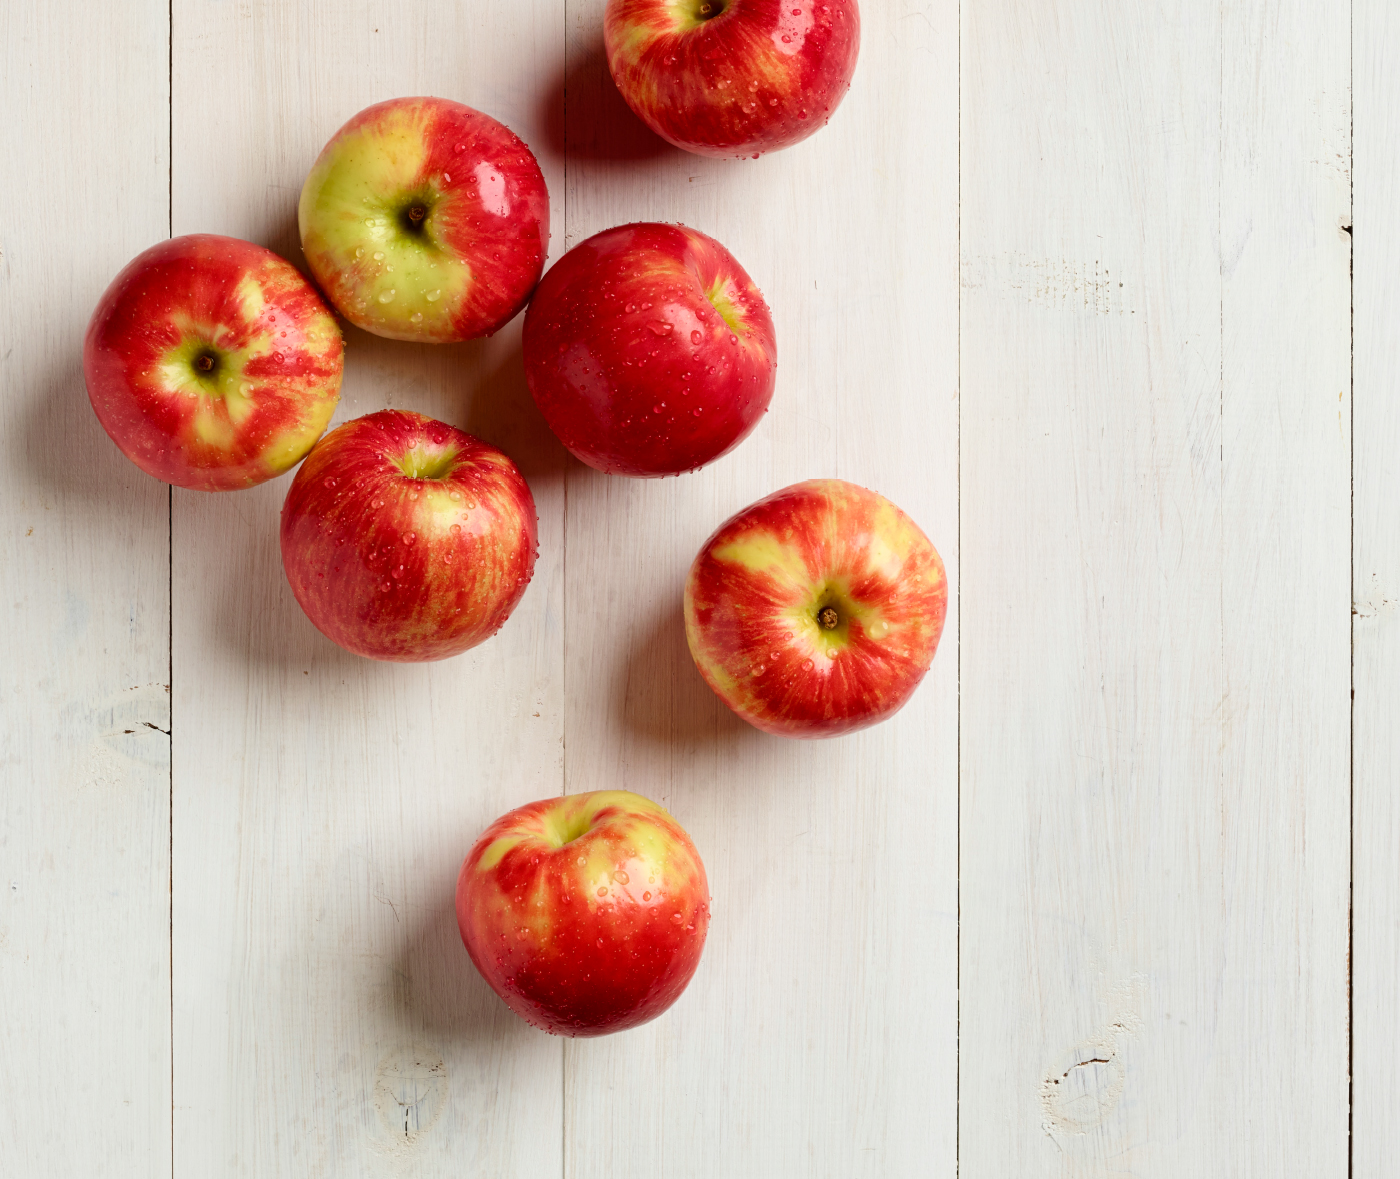 Mighty Fresh Farms Honeycrisp Apples